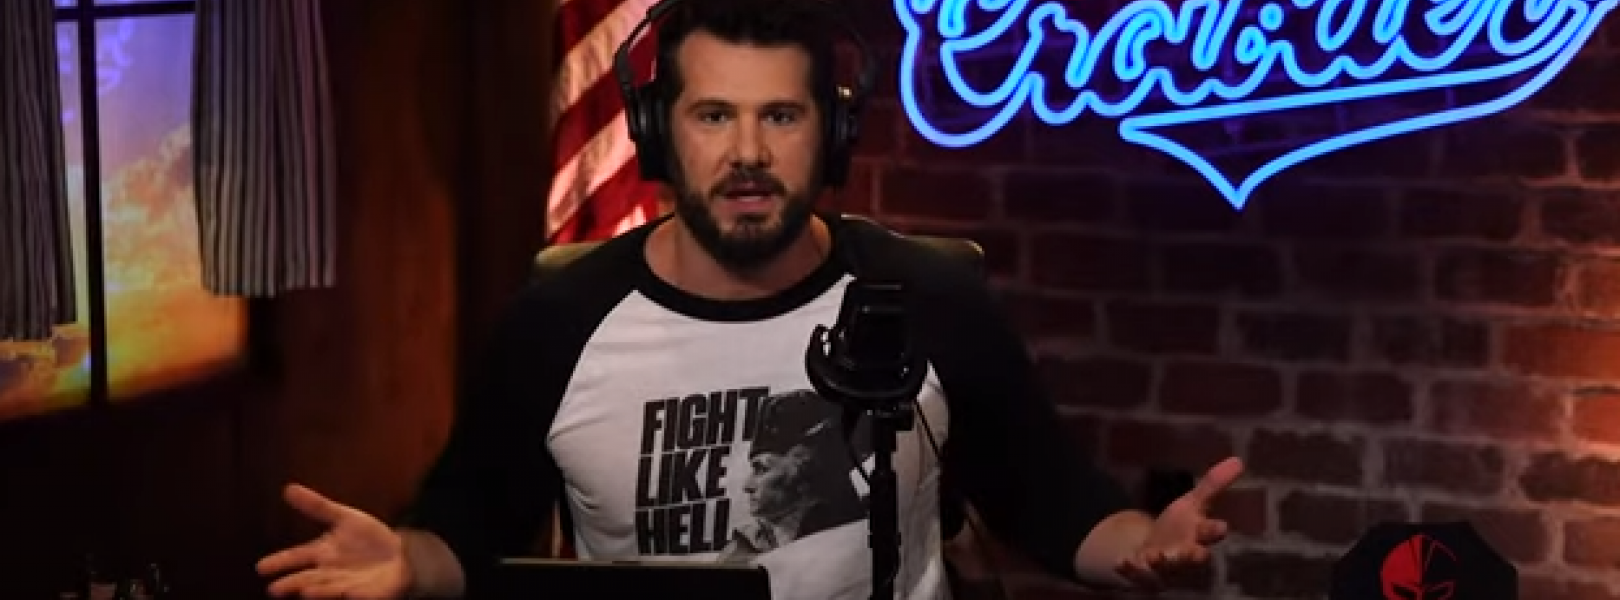 Steven Crowder's show was sexist and offensive